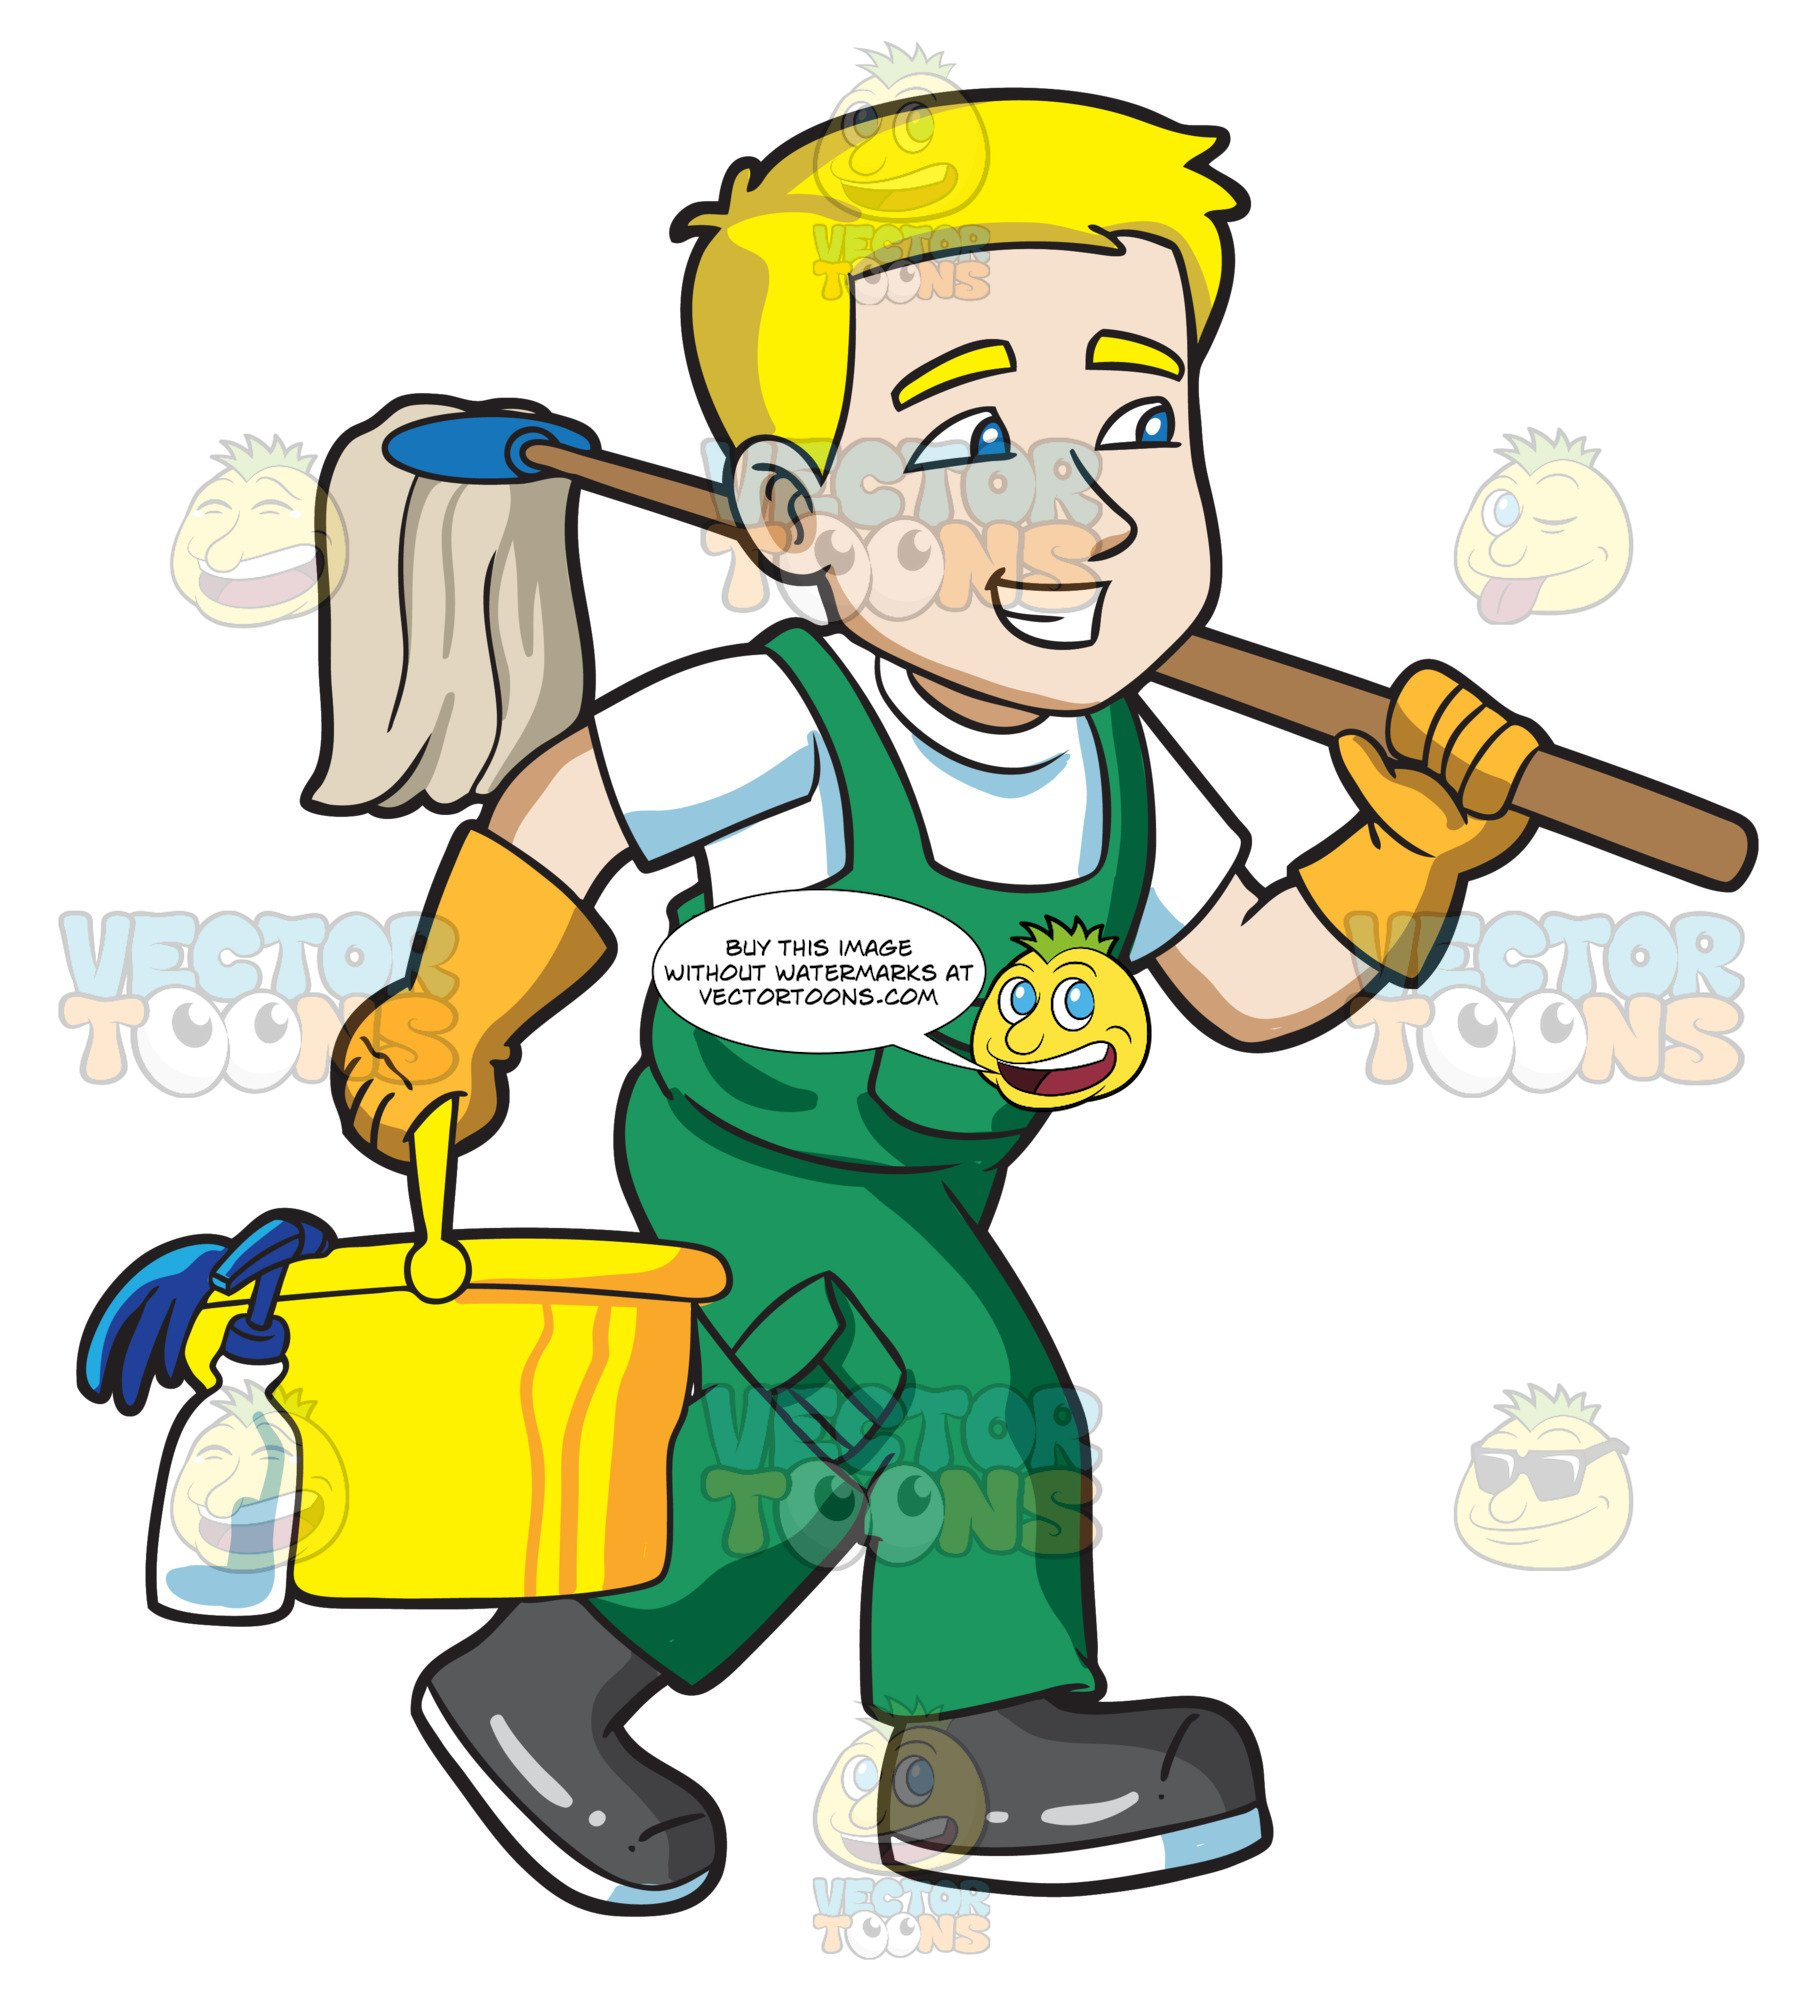 A Janitor On His Way To Clean A Floor.